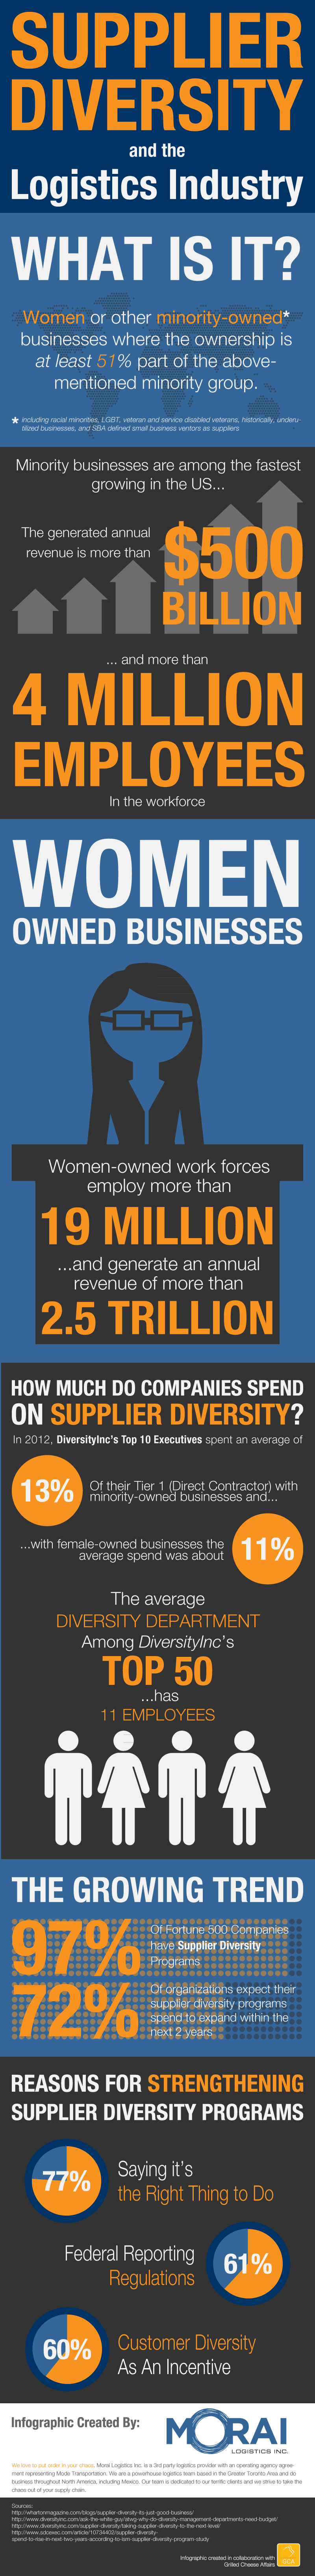 Morai-Logistics-Infographic-Supplier-Diversity